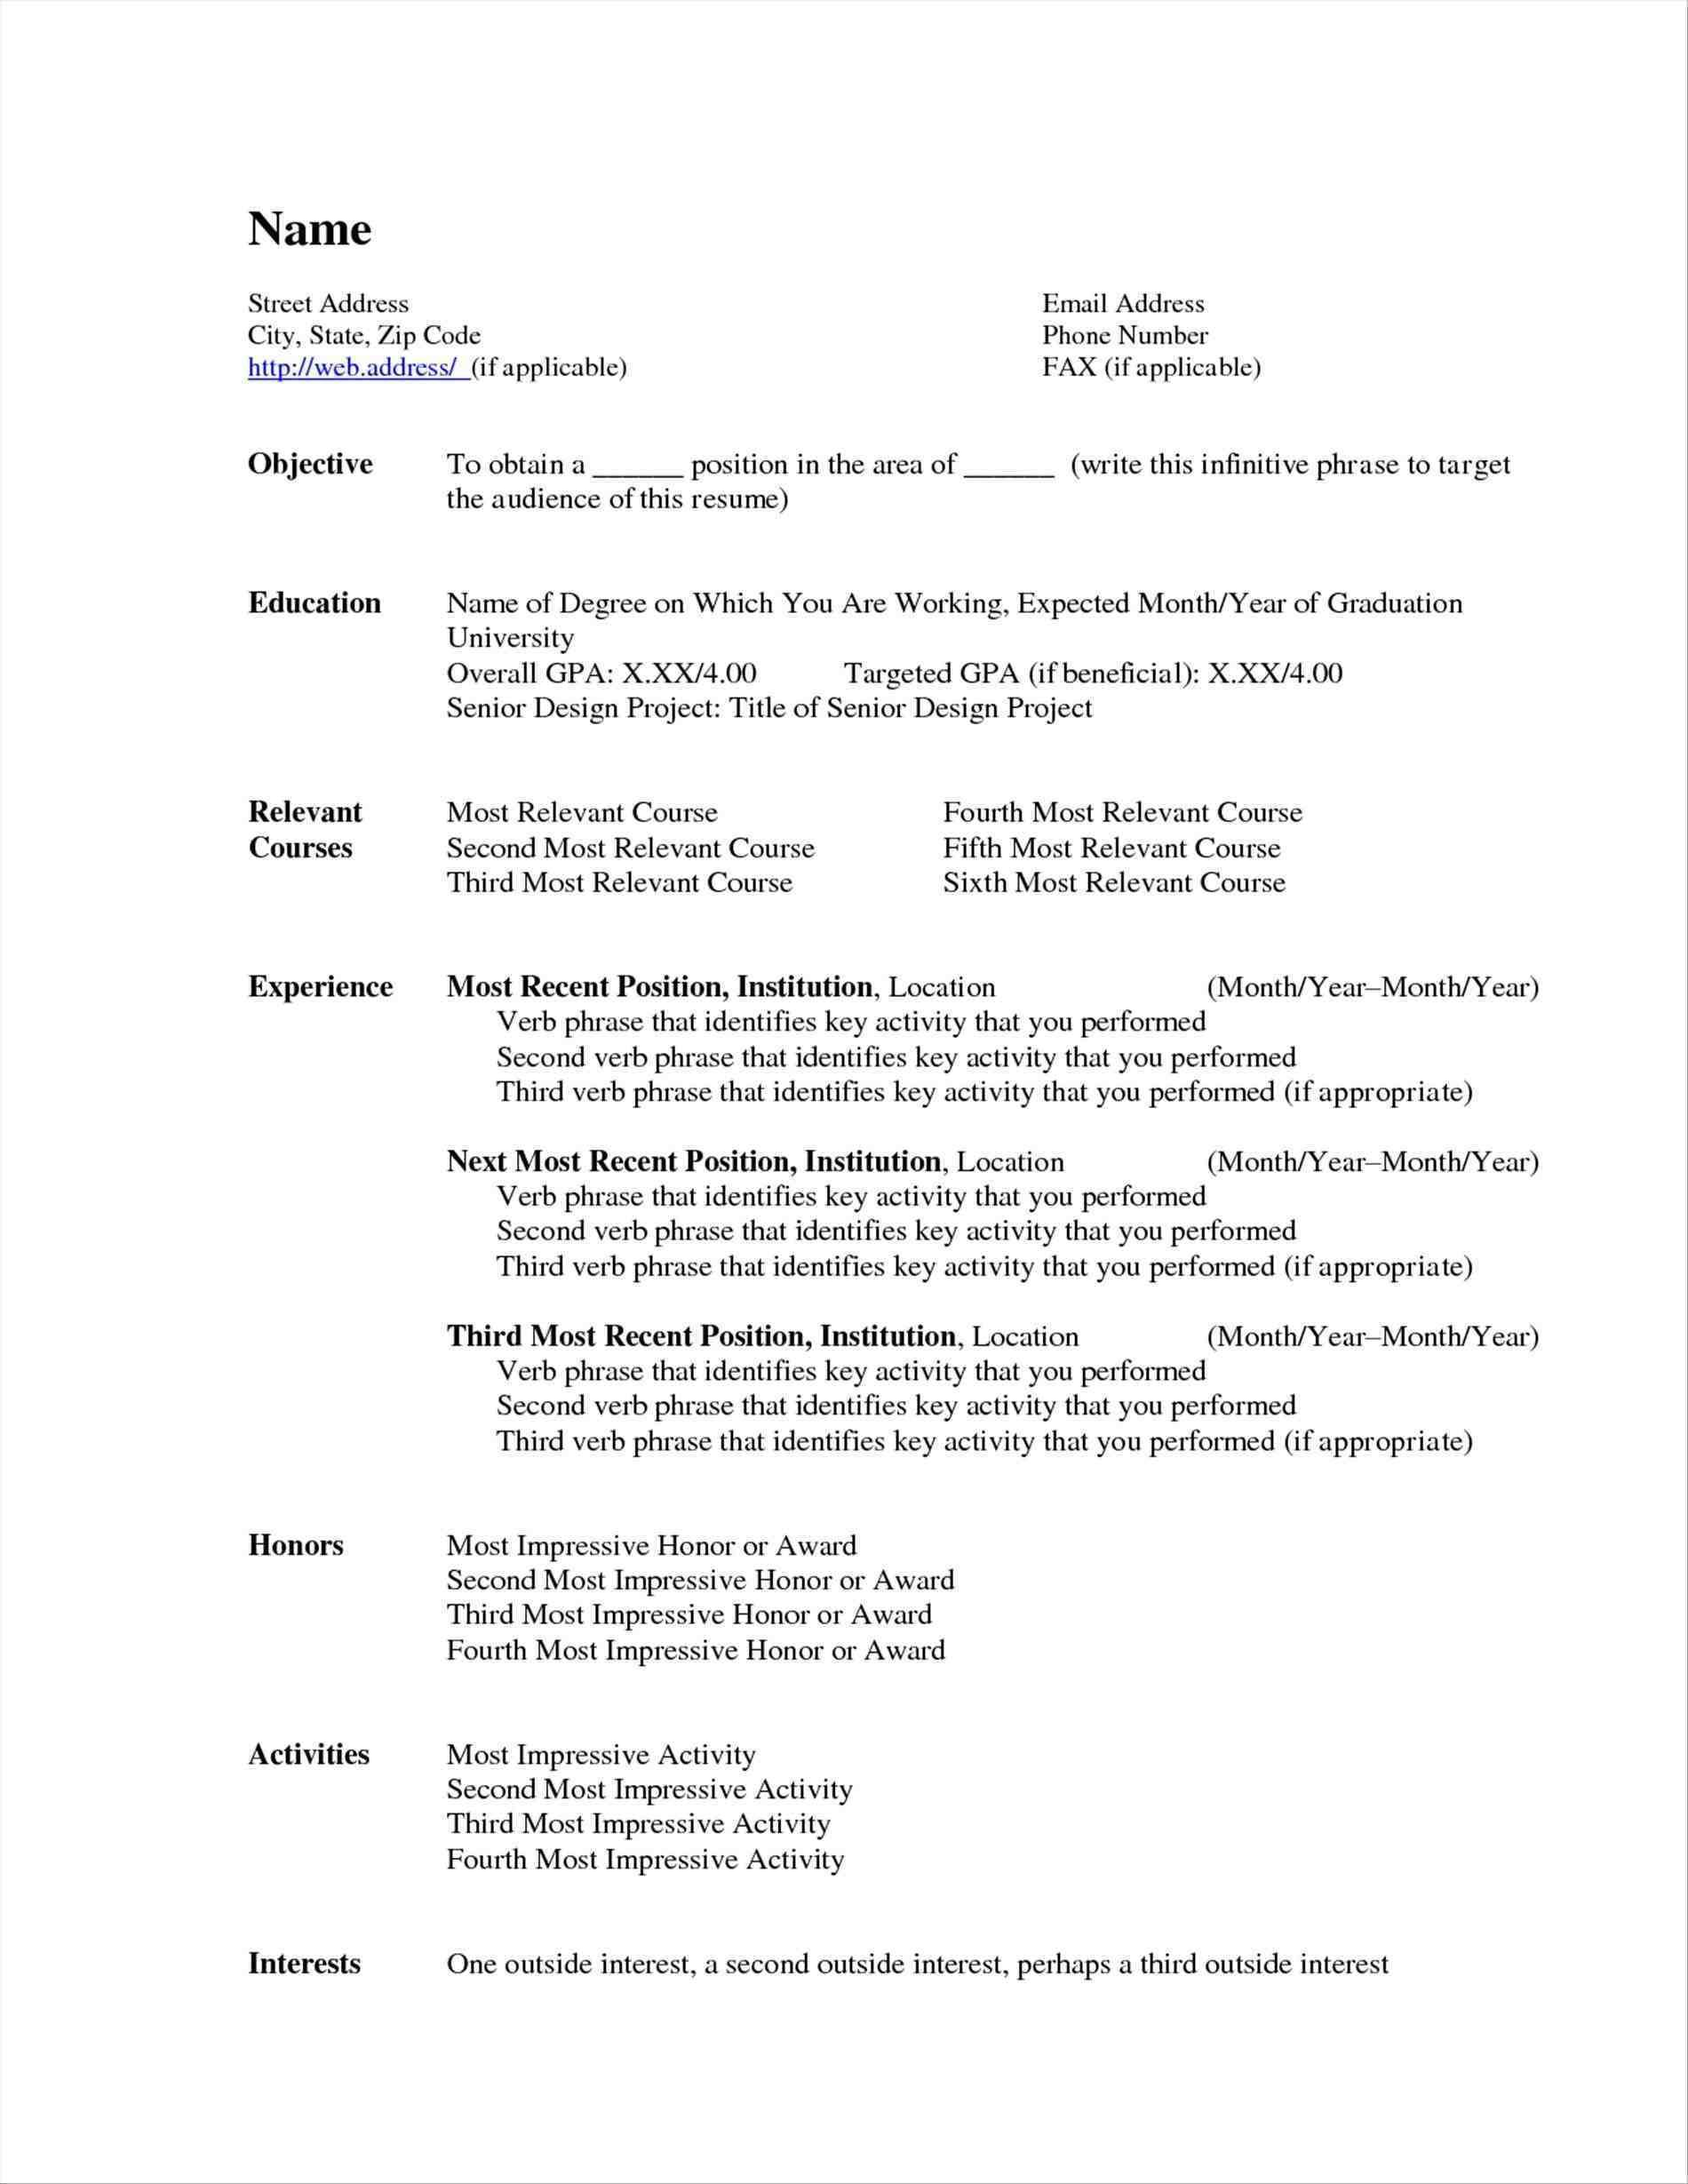 microsoft General Resume Template Microsoft Word word resume ...